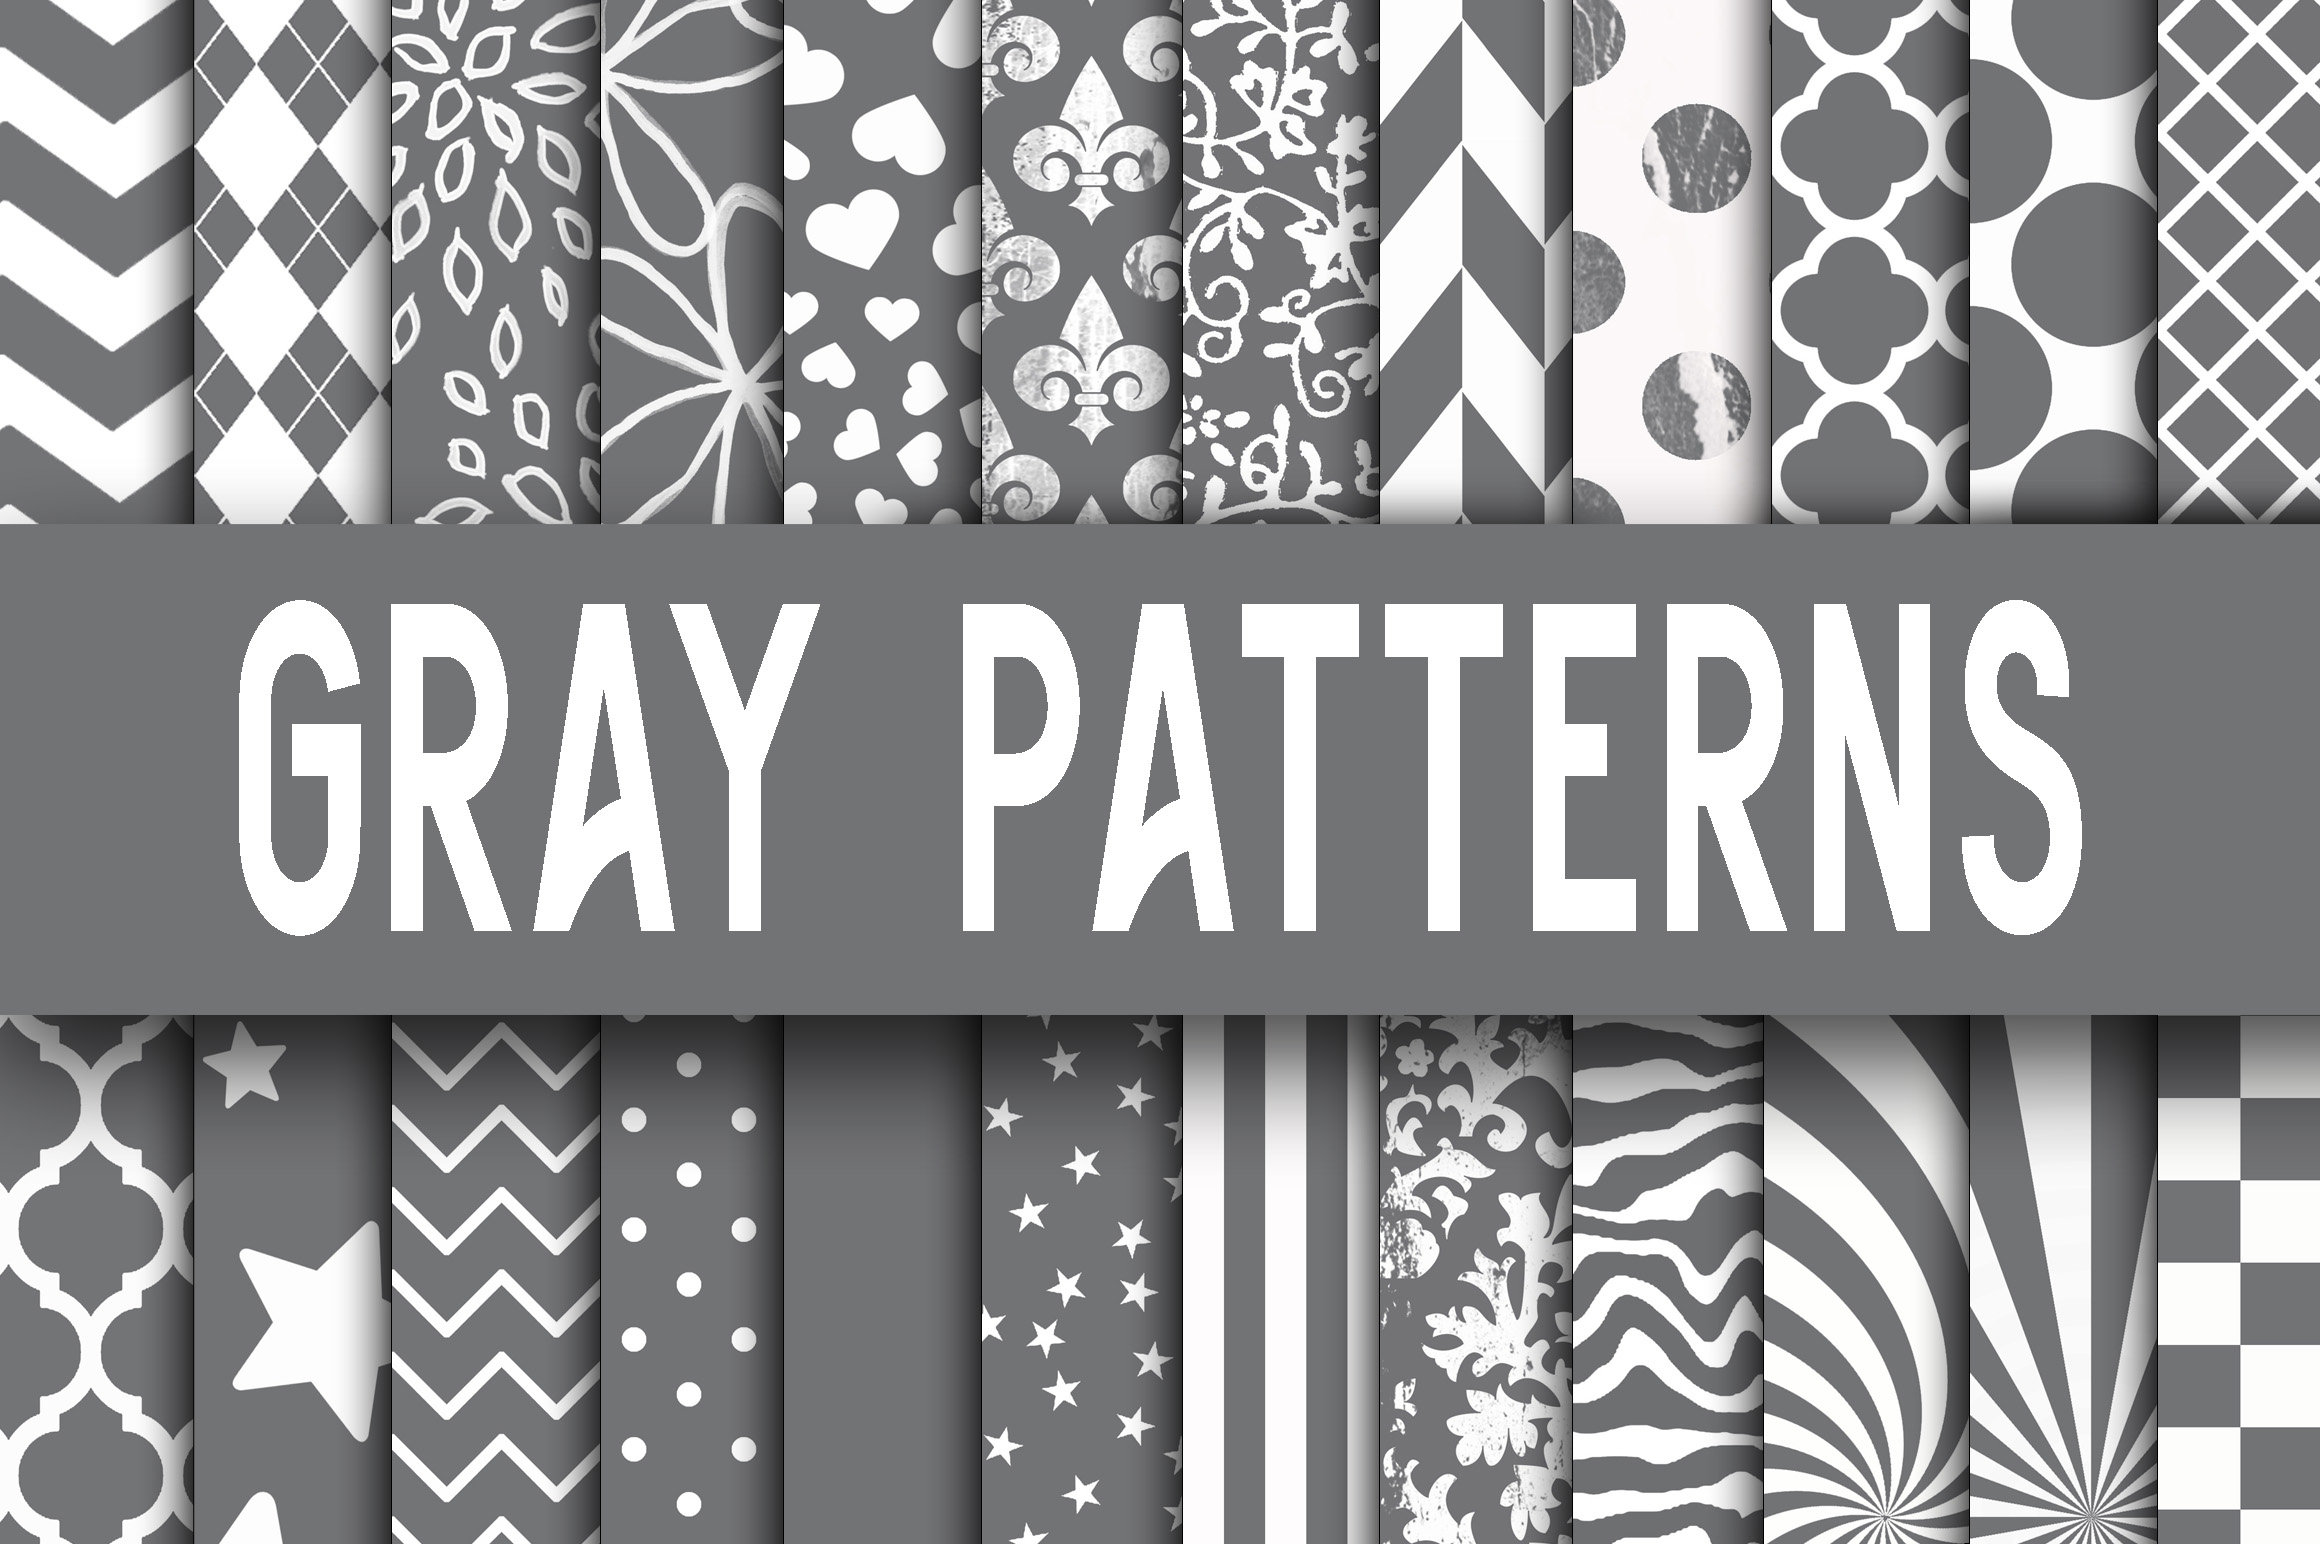 Gray Digital Paper Patterns Graphic Backgrounds By oldmarketdesigns - Image 1